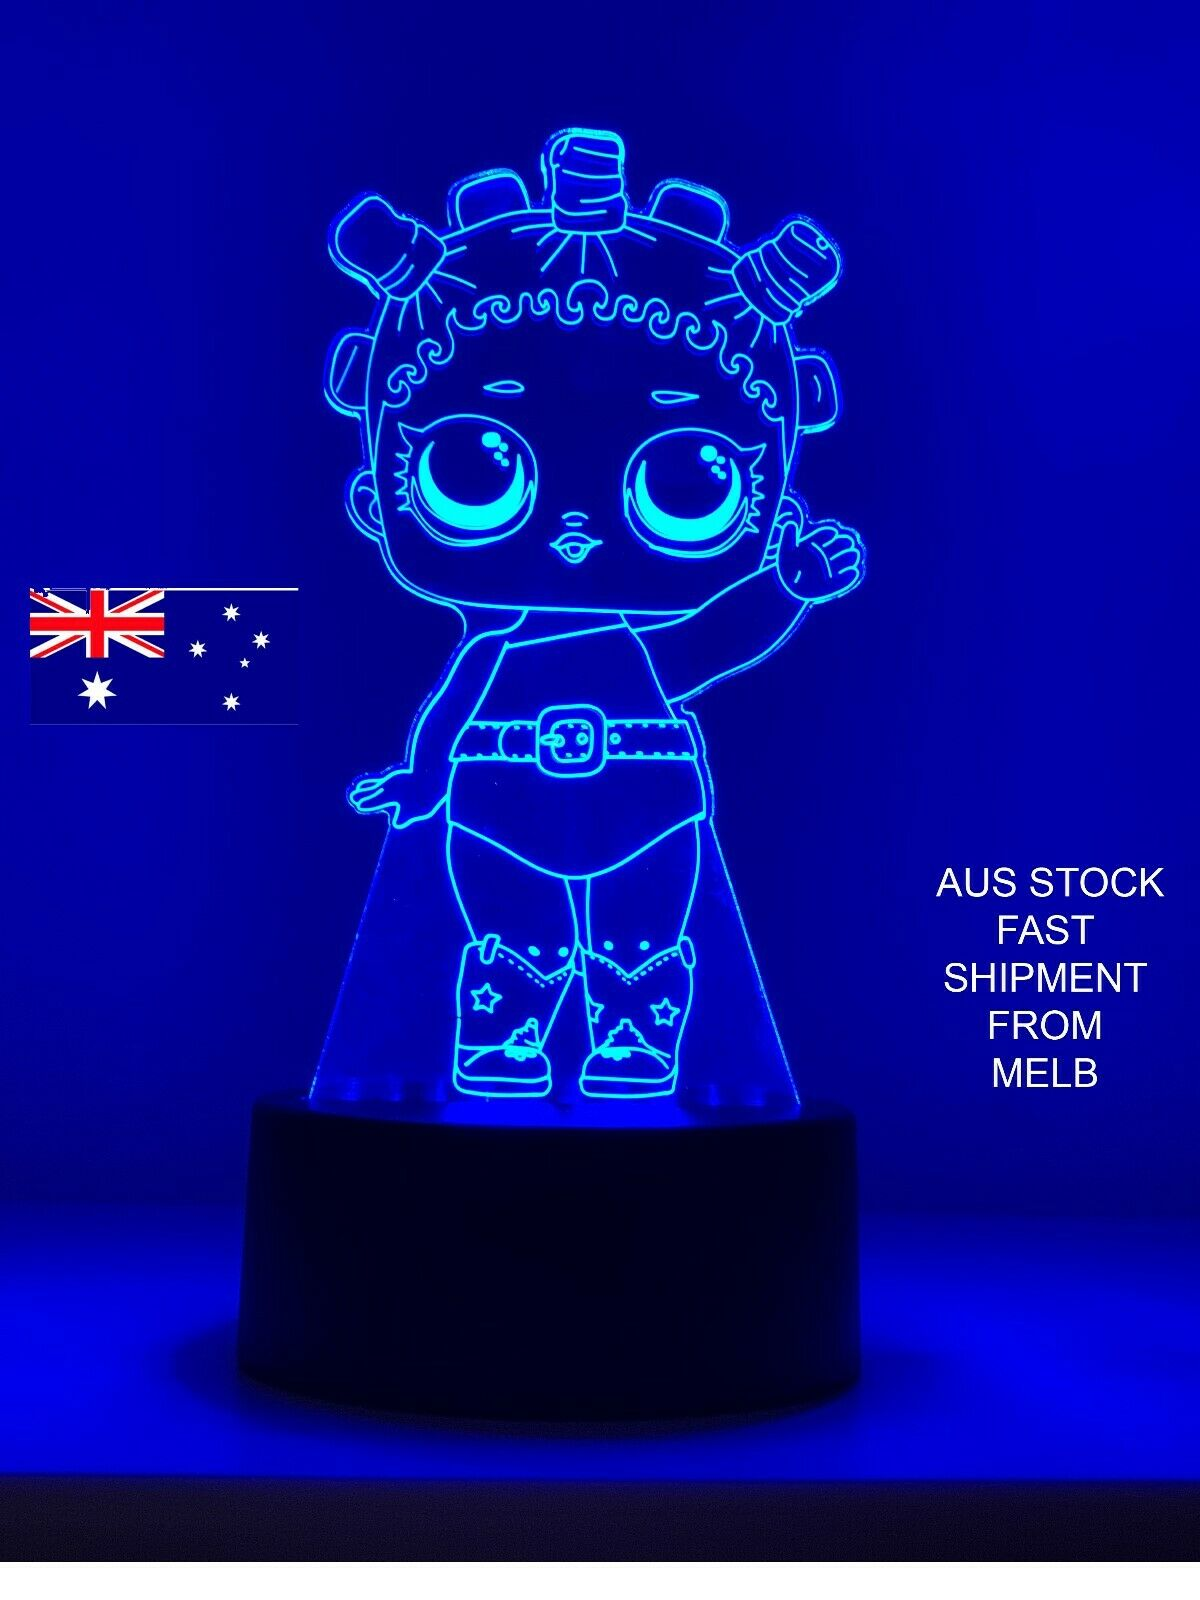 LOL SURPRISE DOLL COSMIC QUEEN 3DLED LIGHT 7 Color Night Light remote RARE LAMP